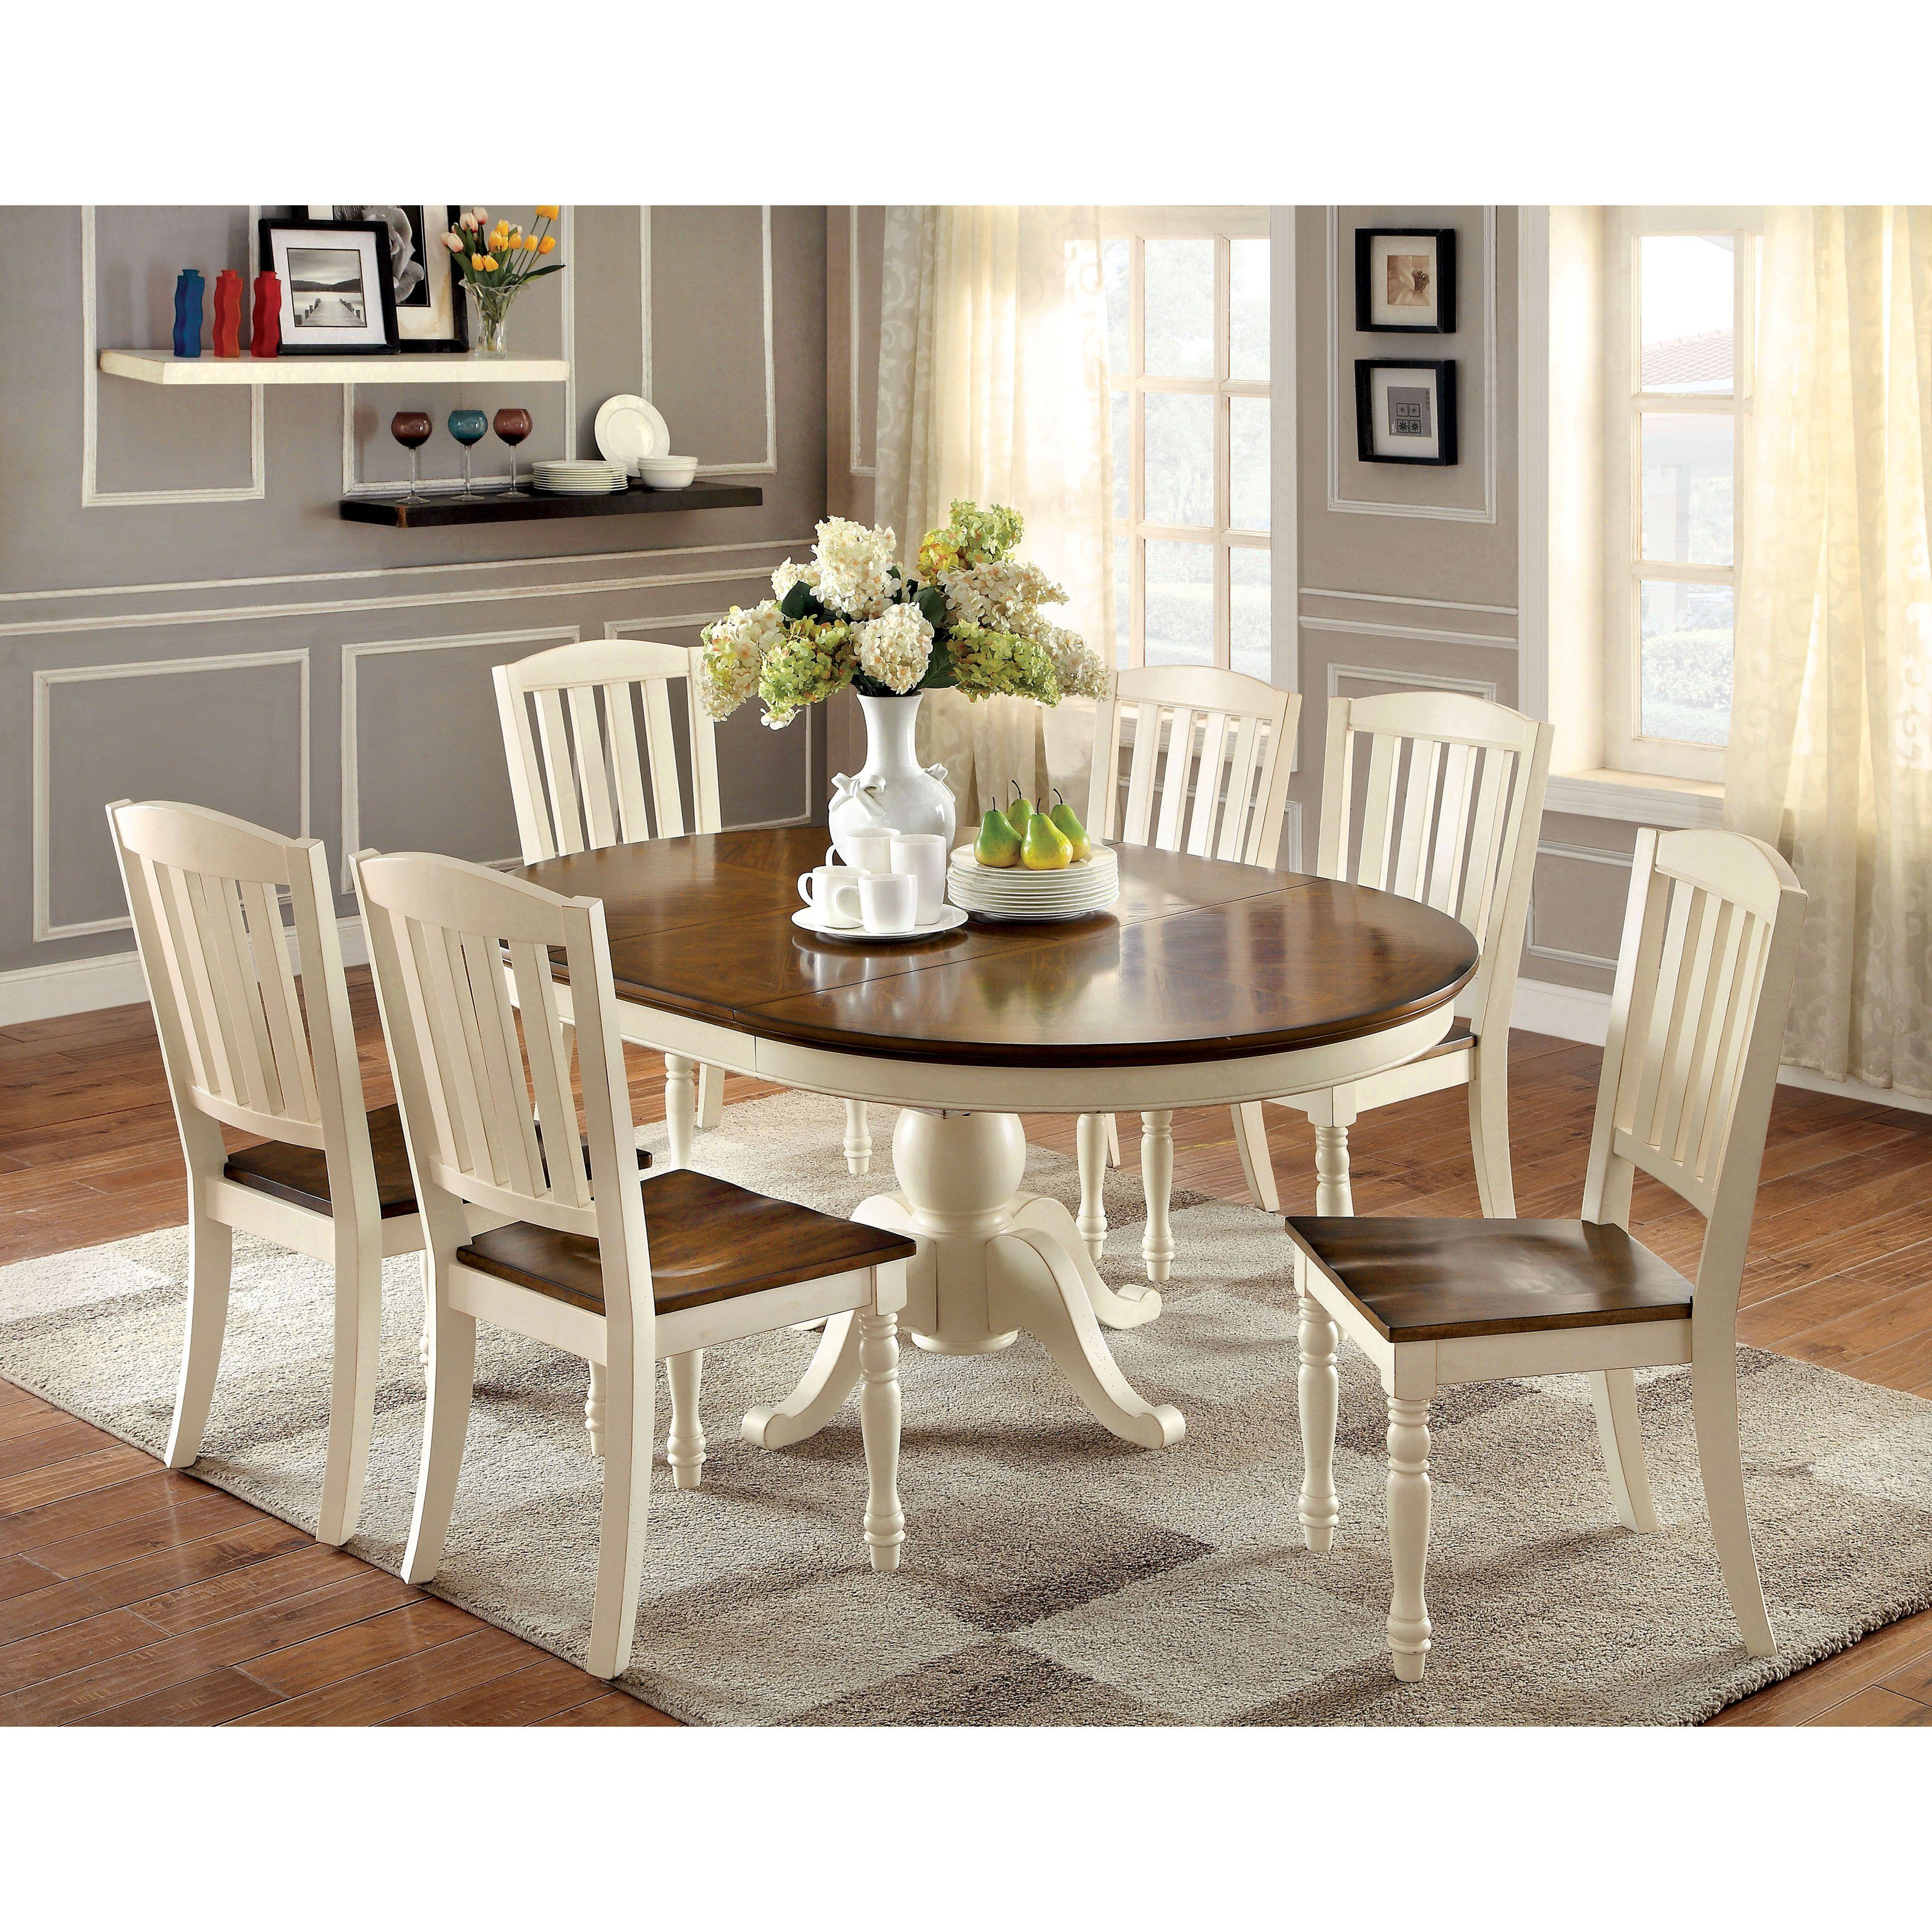 Furniture of America Besette Cottage Oval Dining Table